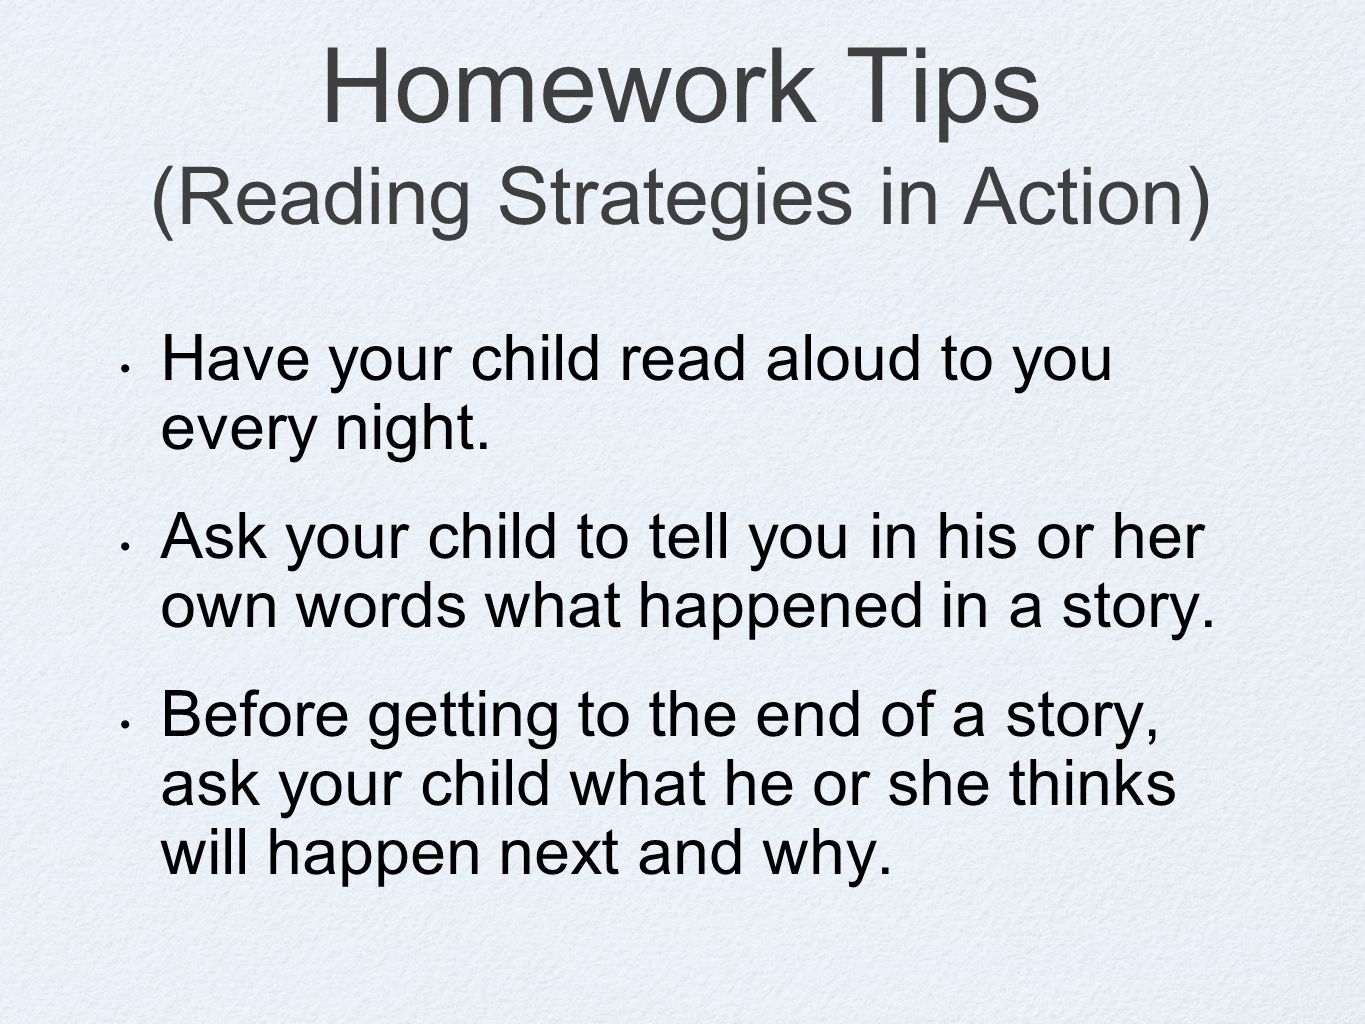 Homework Tips (Reading Strategies in Action)